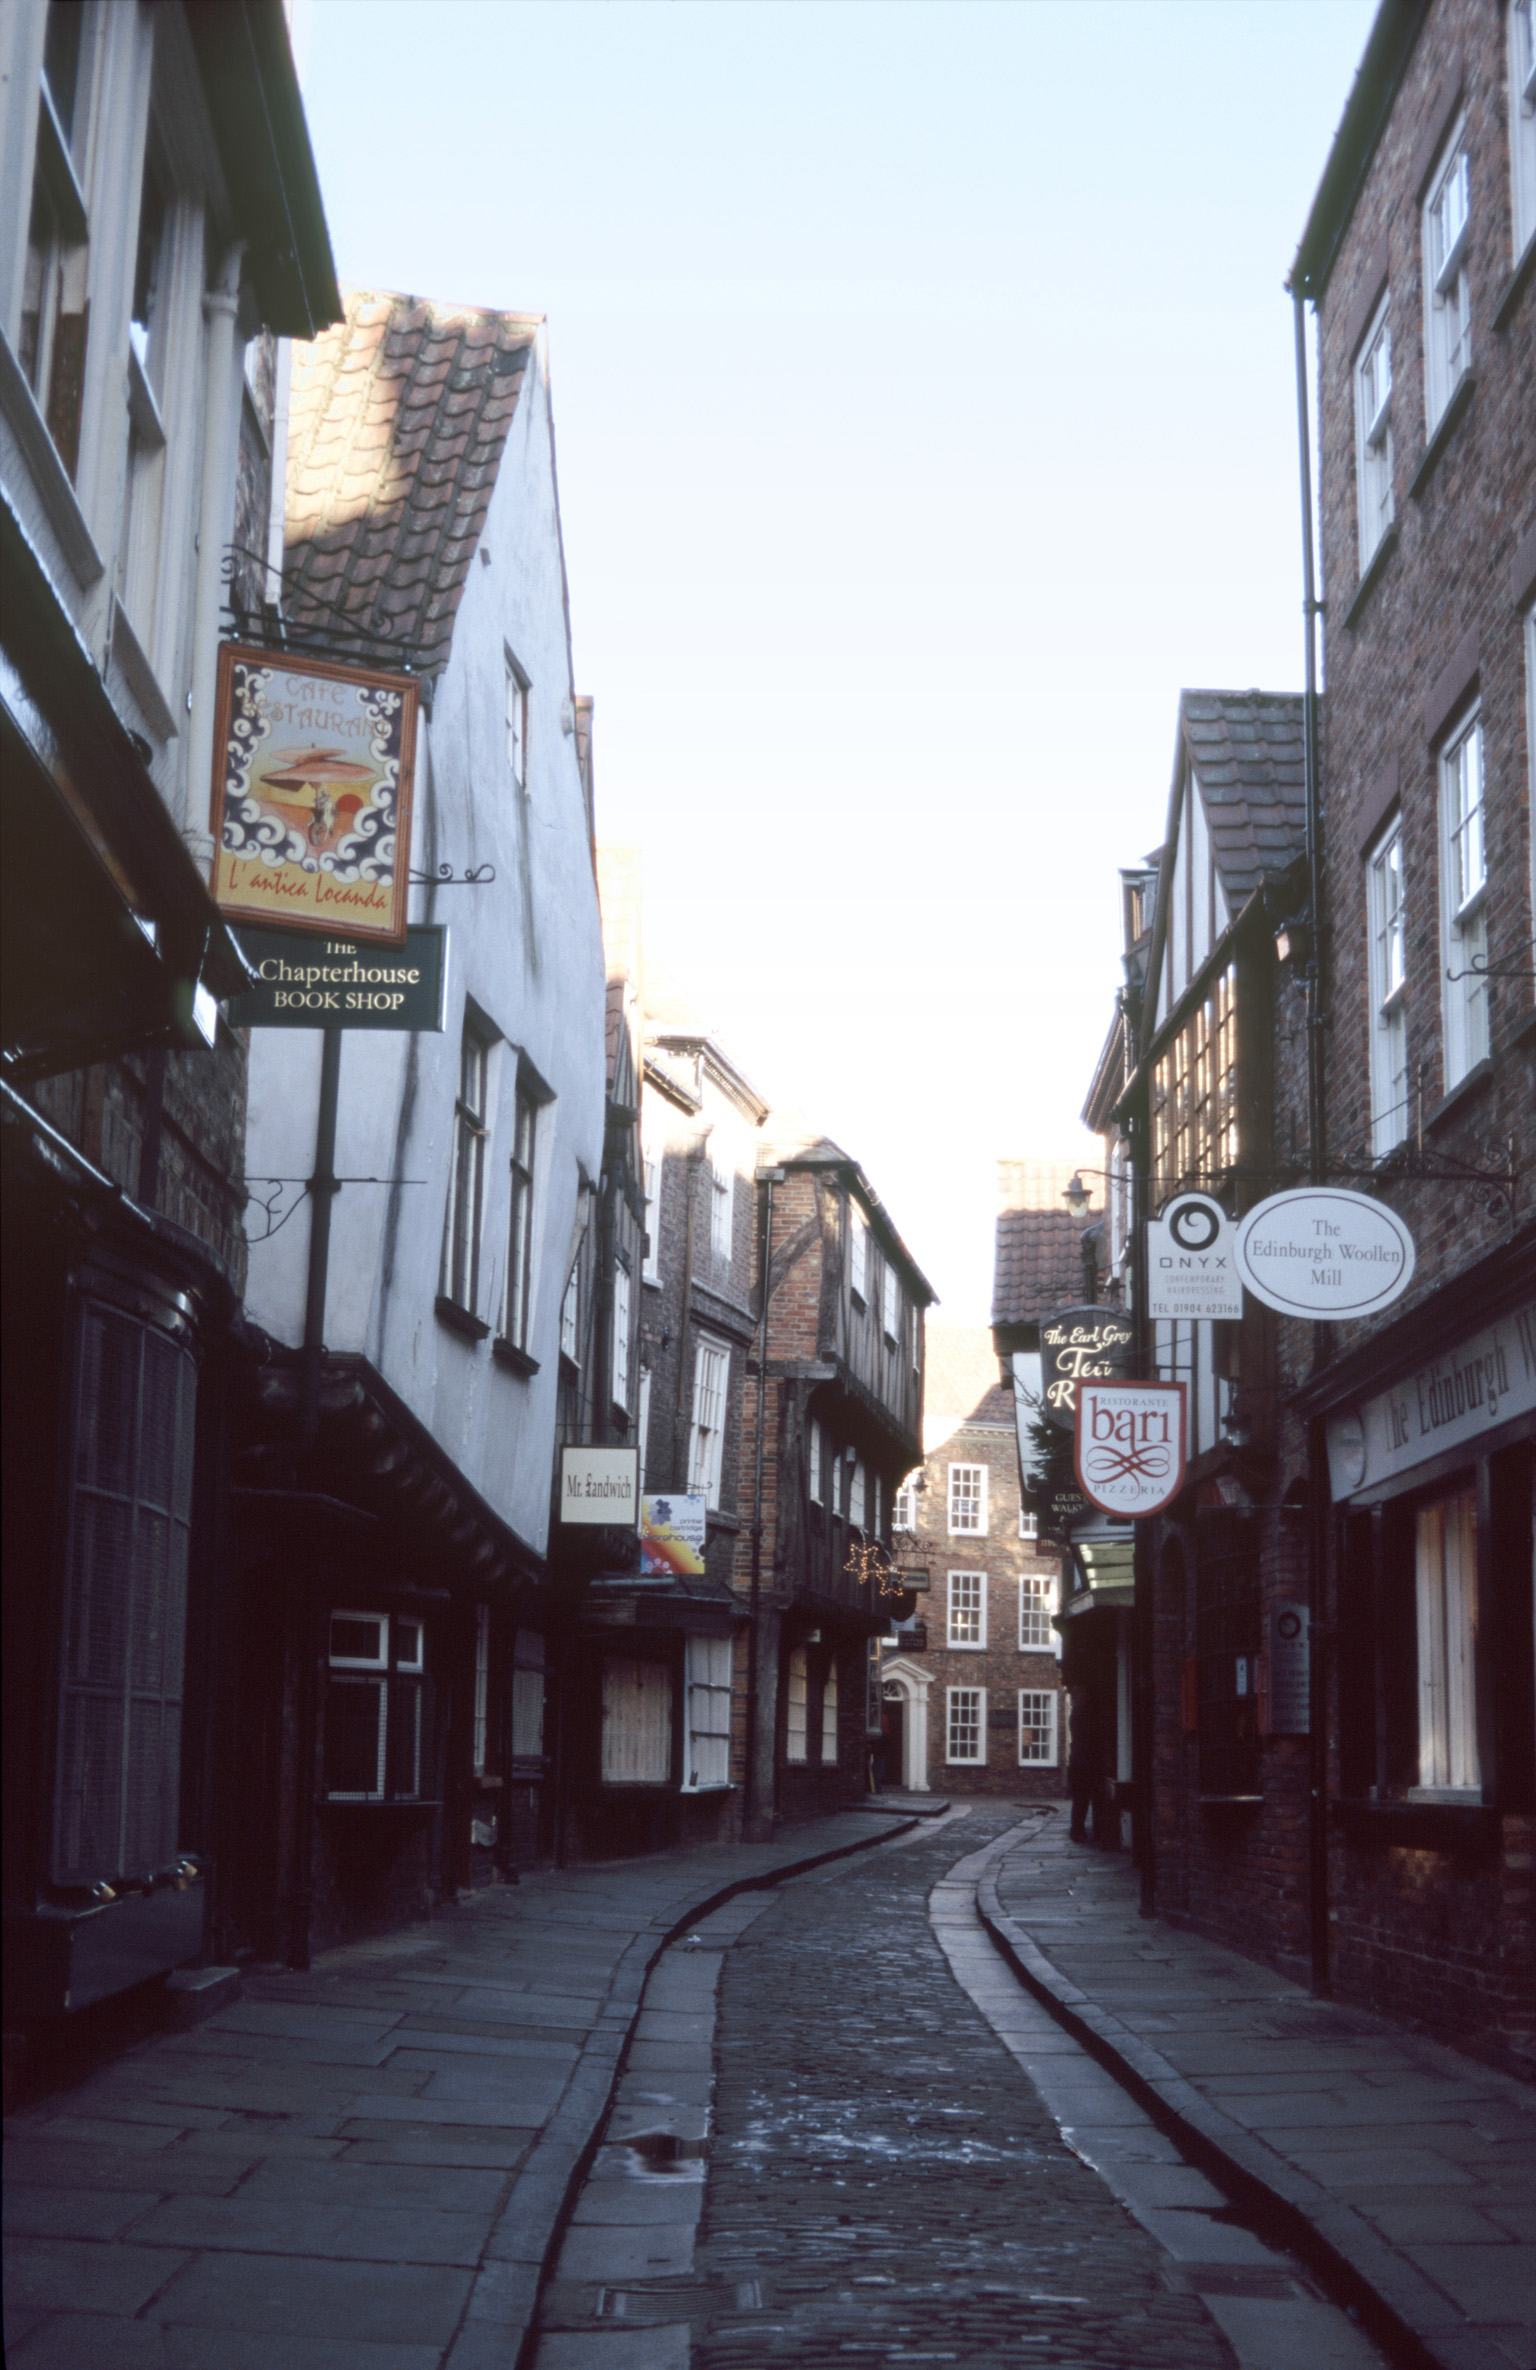 The Shambles, York, a tourist trap with quaint shops lining a narrow cobbled street in a picturesque view